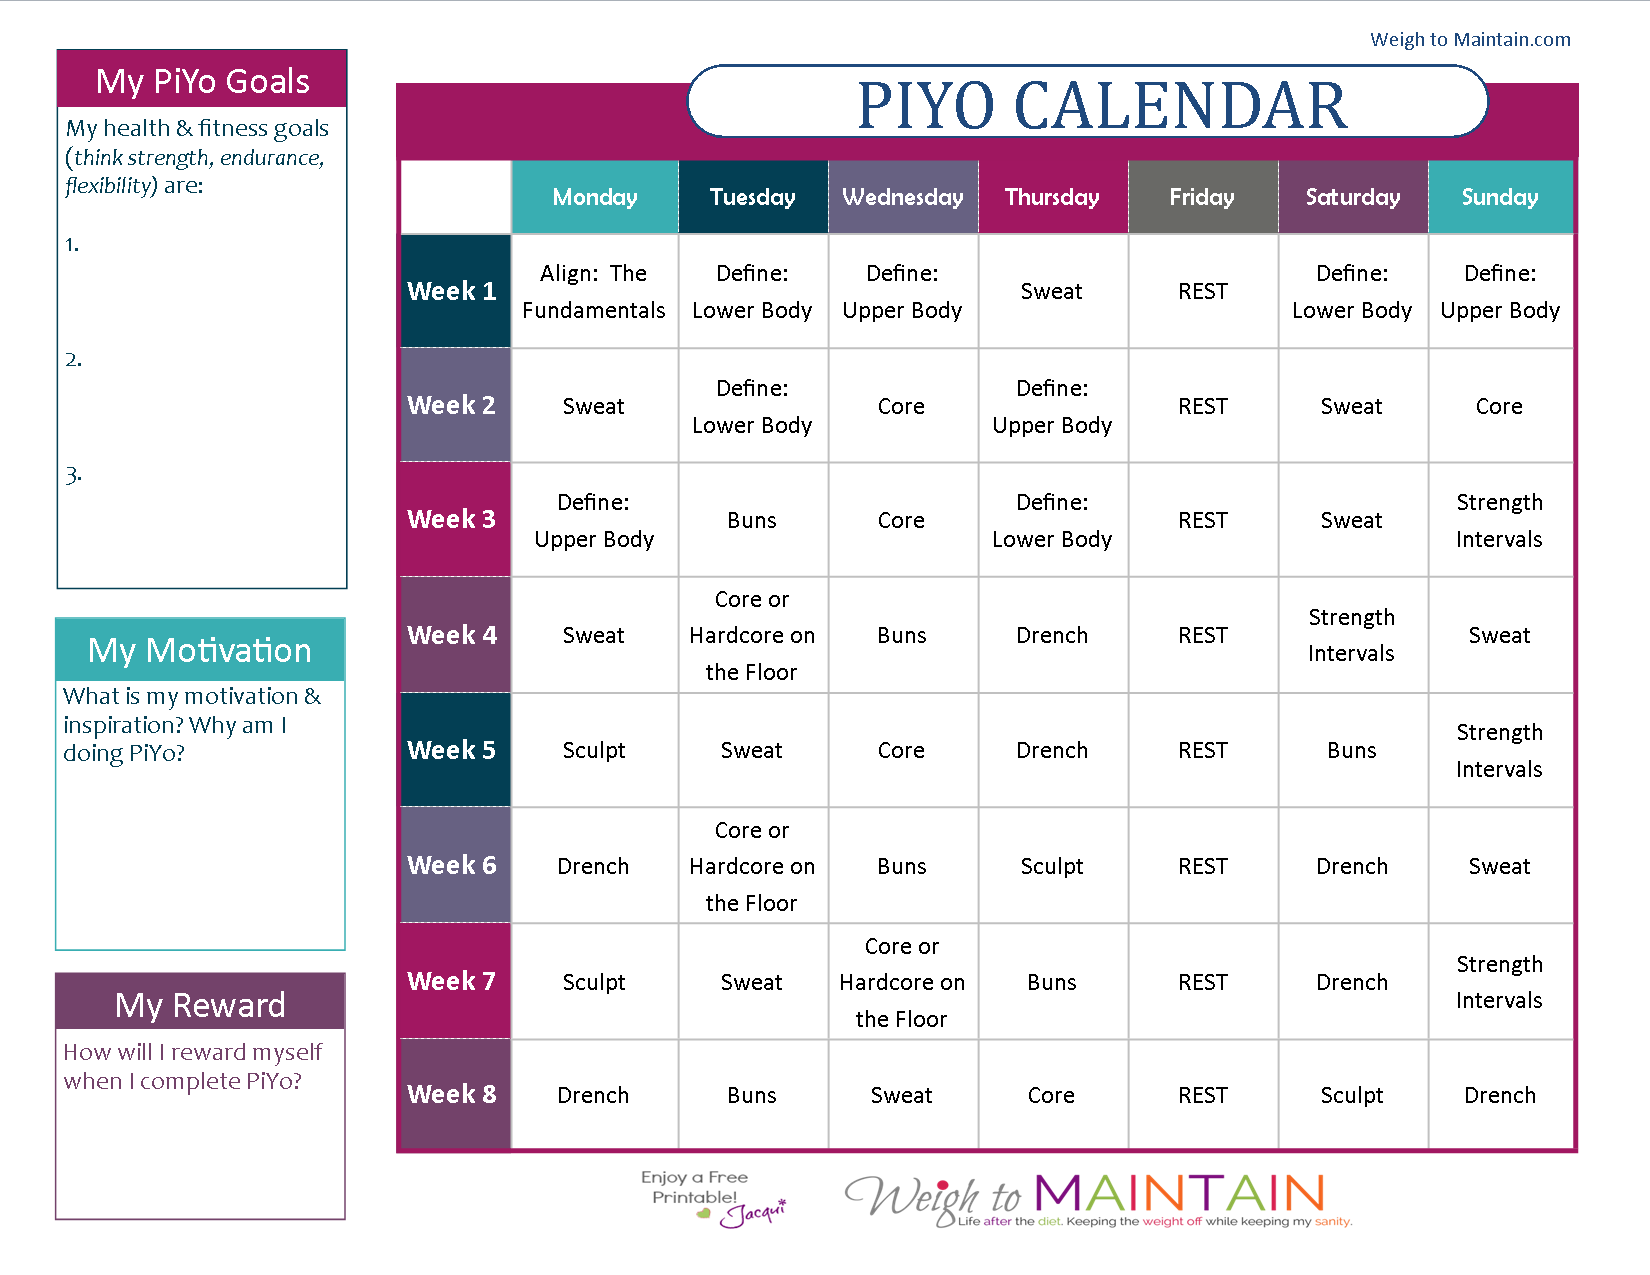 Printable Piyo Calendar And Workout Schedule Working Out Alternating Onoff Switch Circuit Diary For Both The Basic Program Strength Use Planner To Set Goals Discovery Motivation Plan